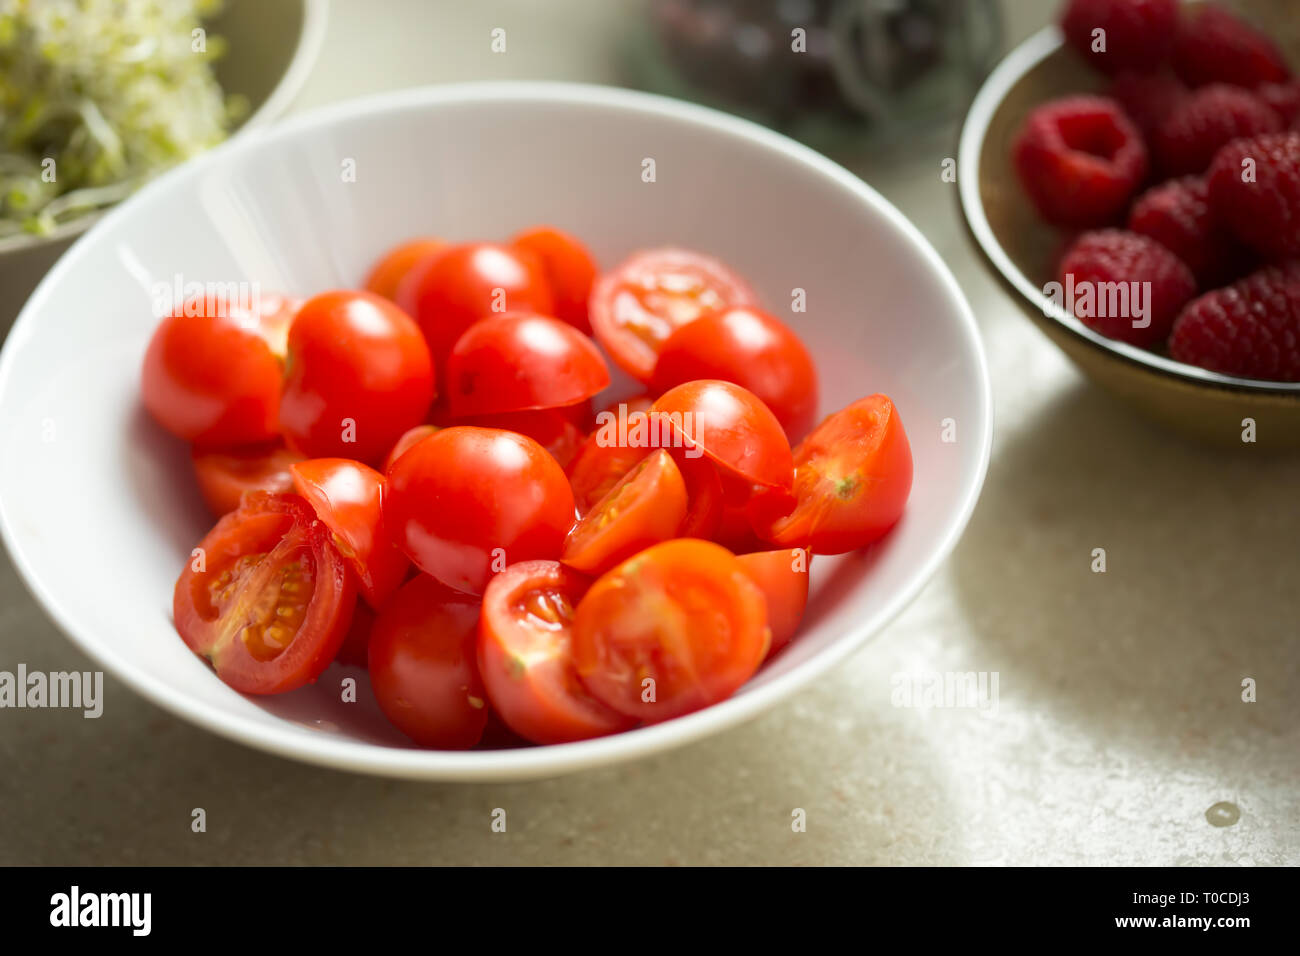 Cherry tomatoes in bowl, salad ingredients Stock Photo